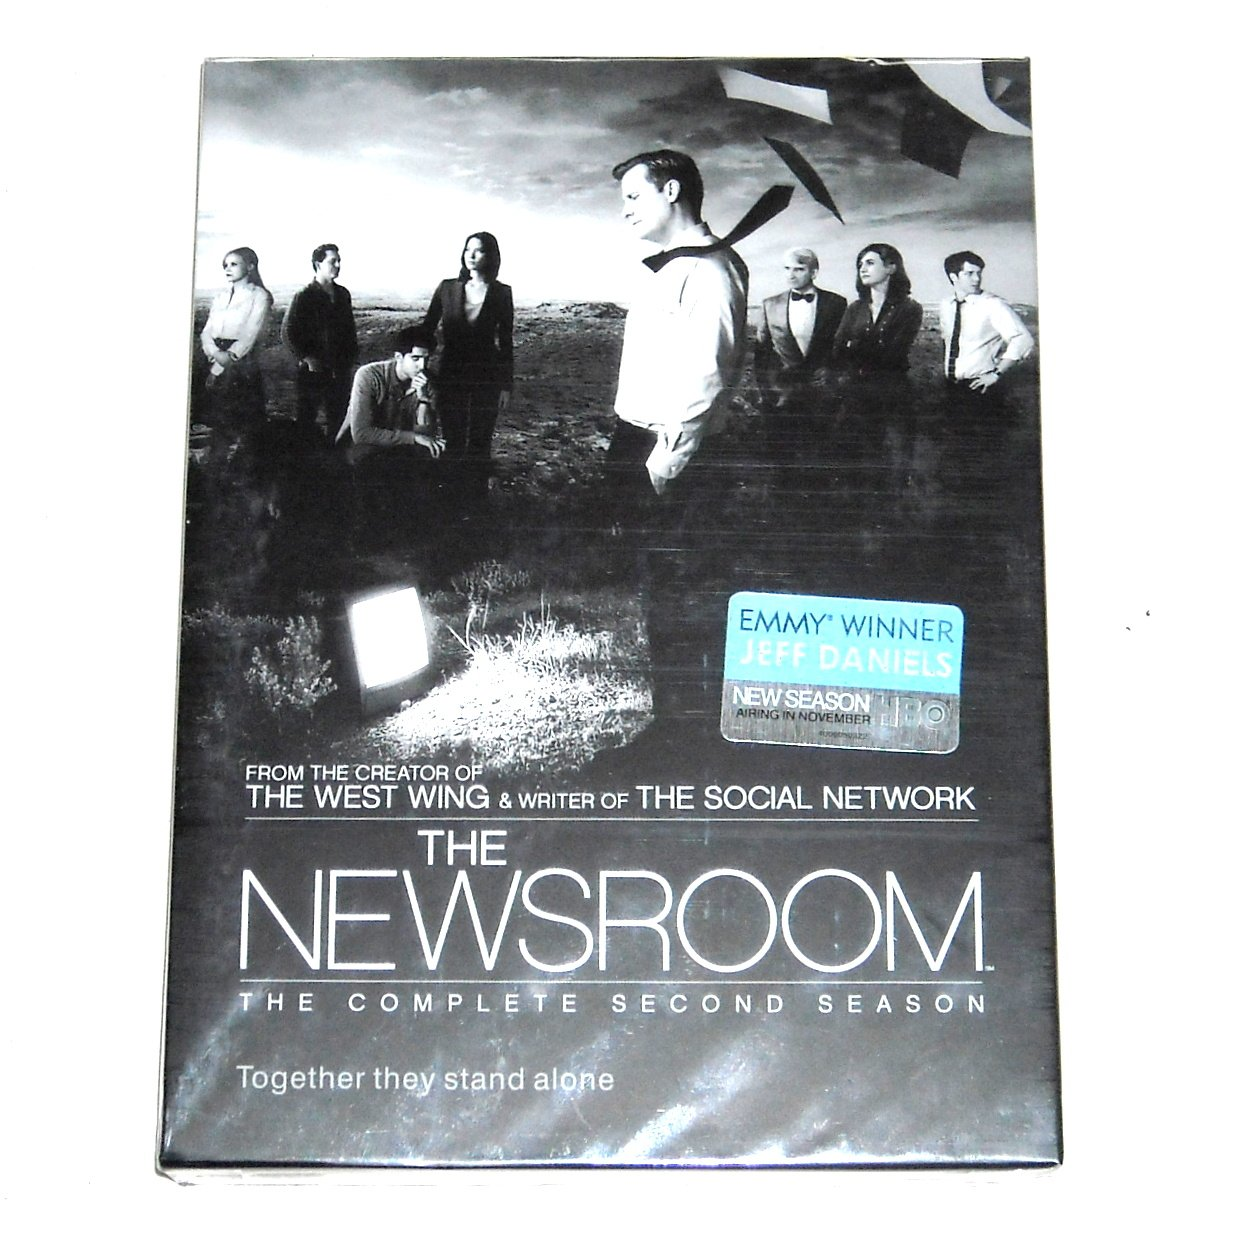 HBO The Newsroom Season 2 Complete Second Season DVD